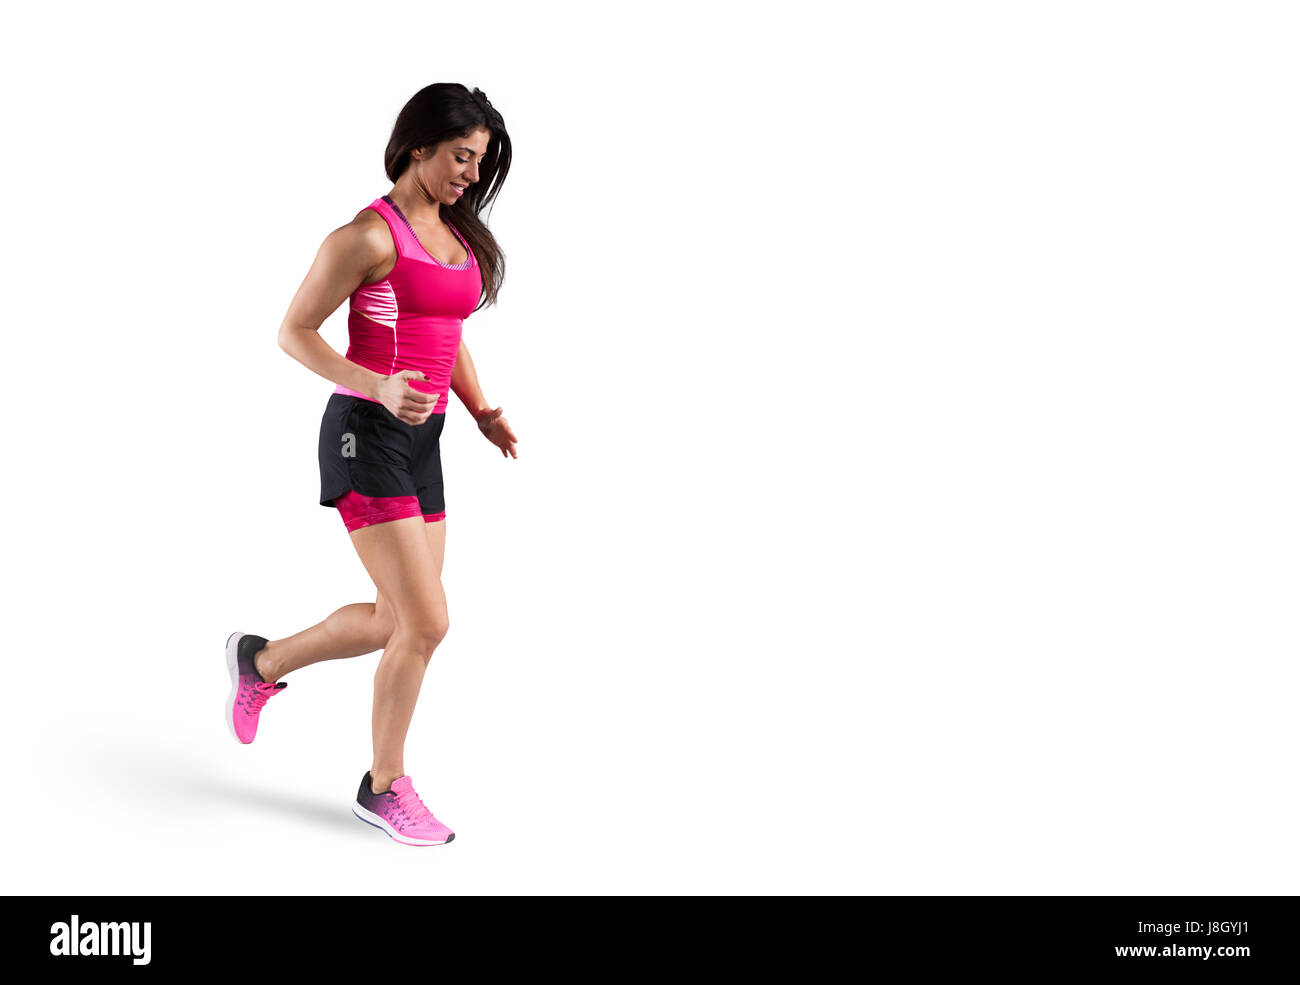 Athletic woman runner - Stock Image